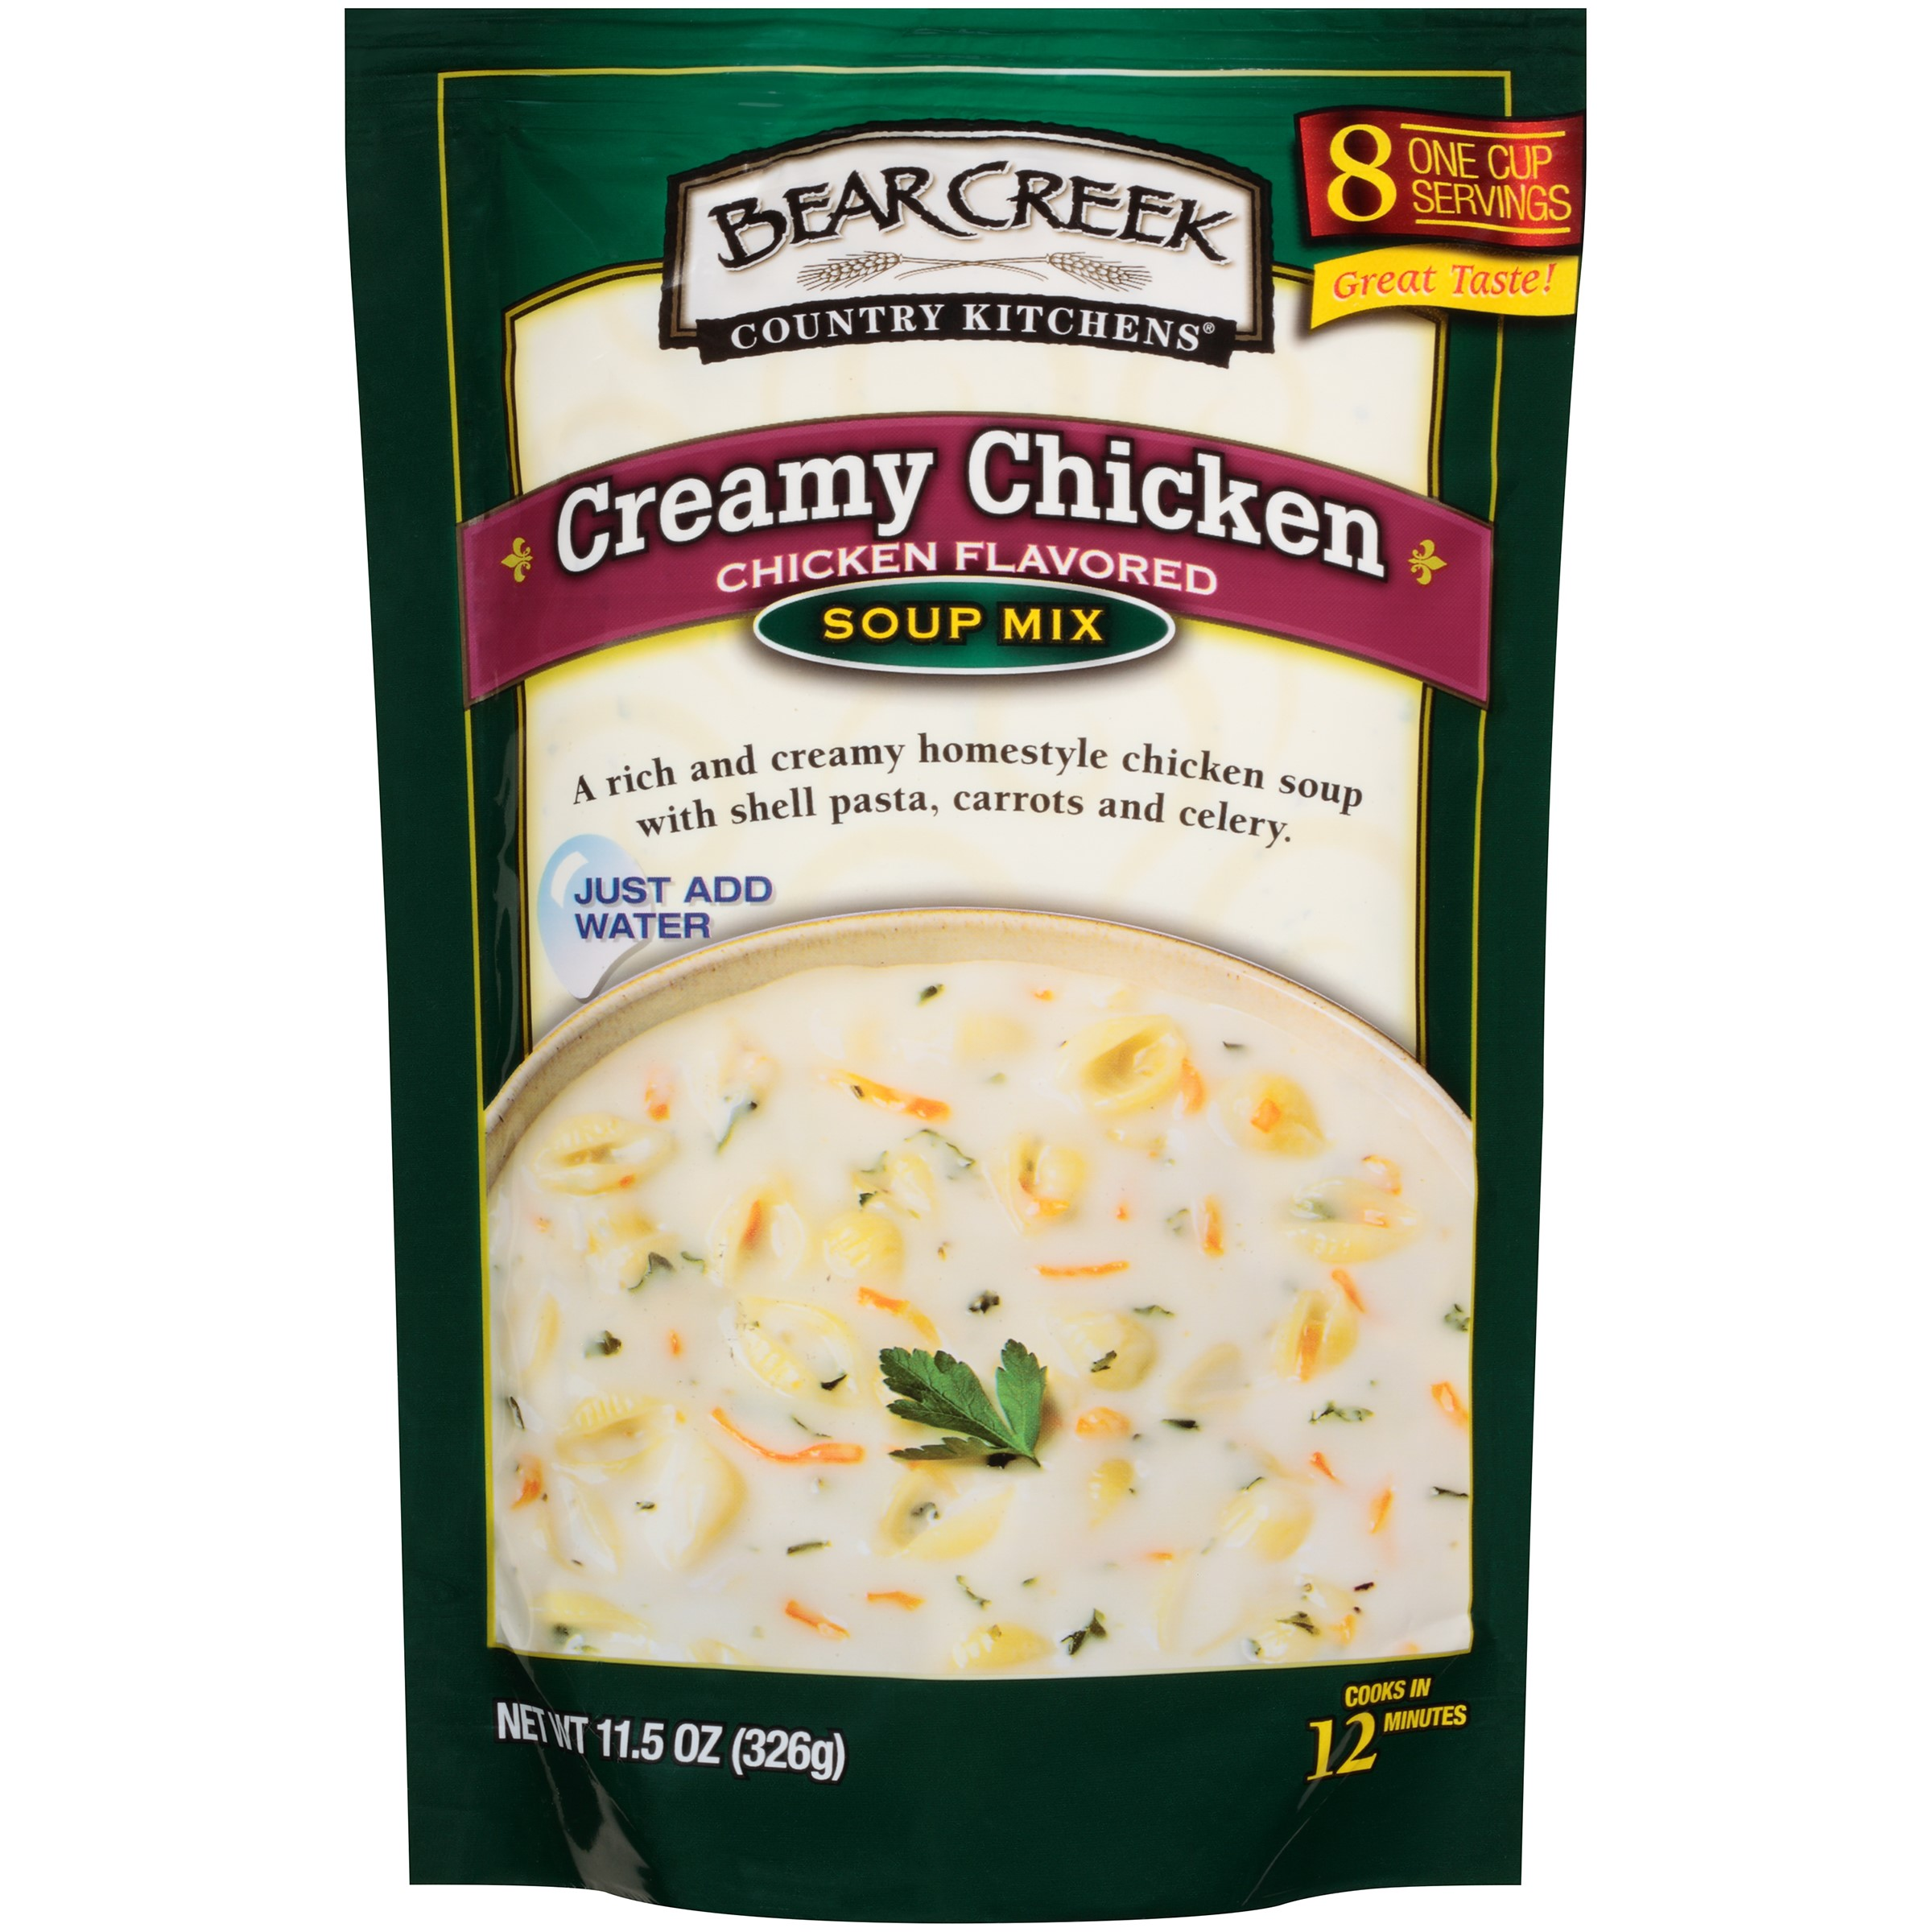 Bear Creek Country Kitchens Creamy Chicken Soup Mix 11.5 oz. Pouch by B&G